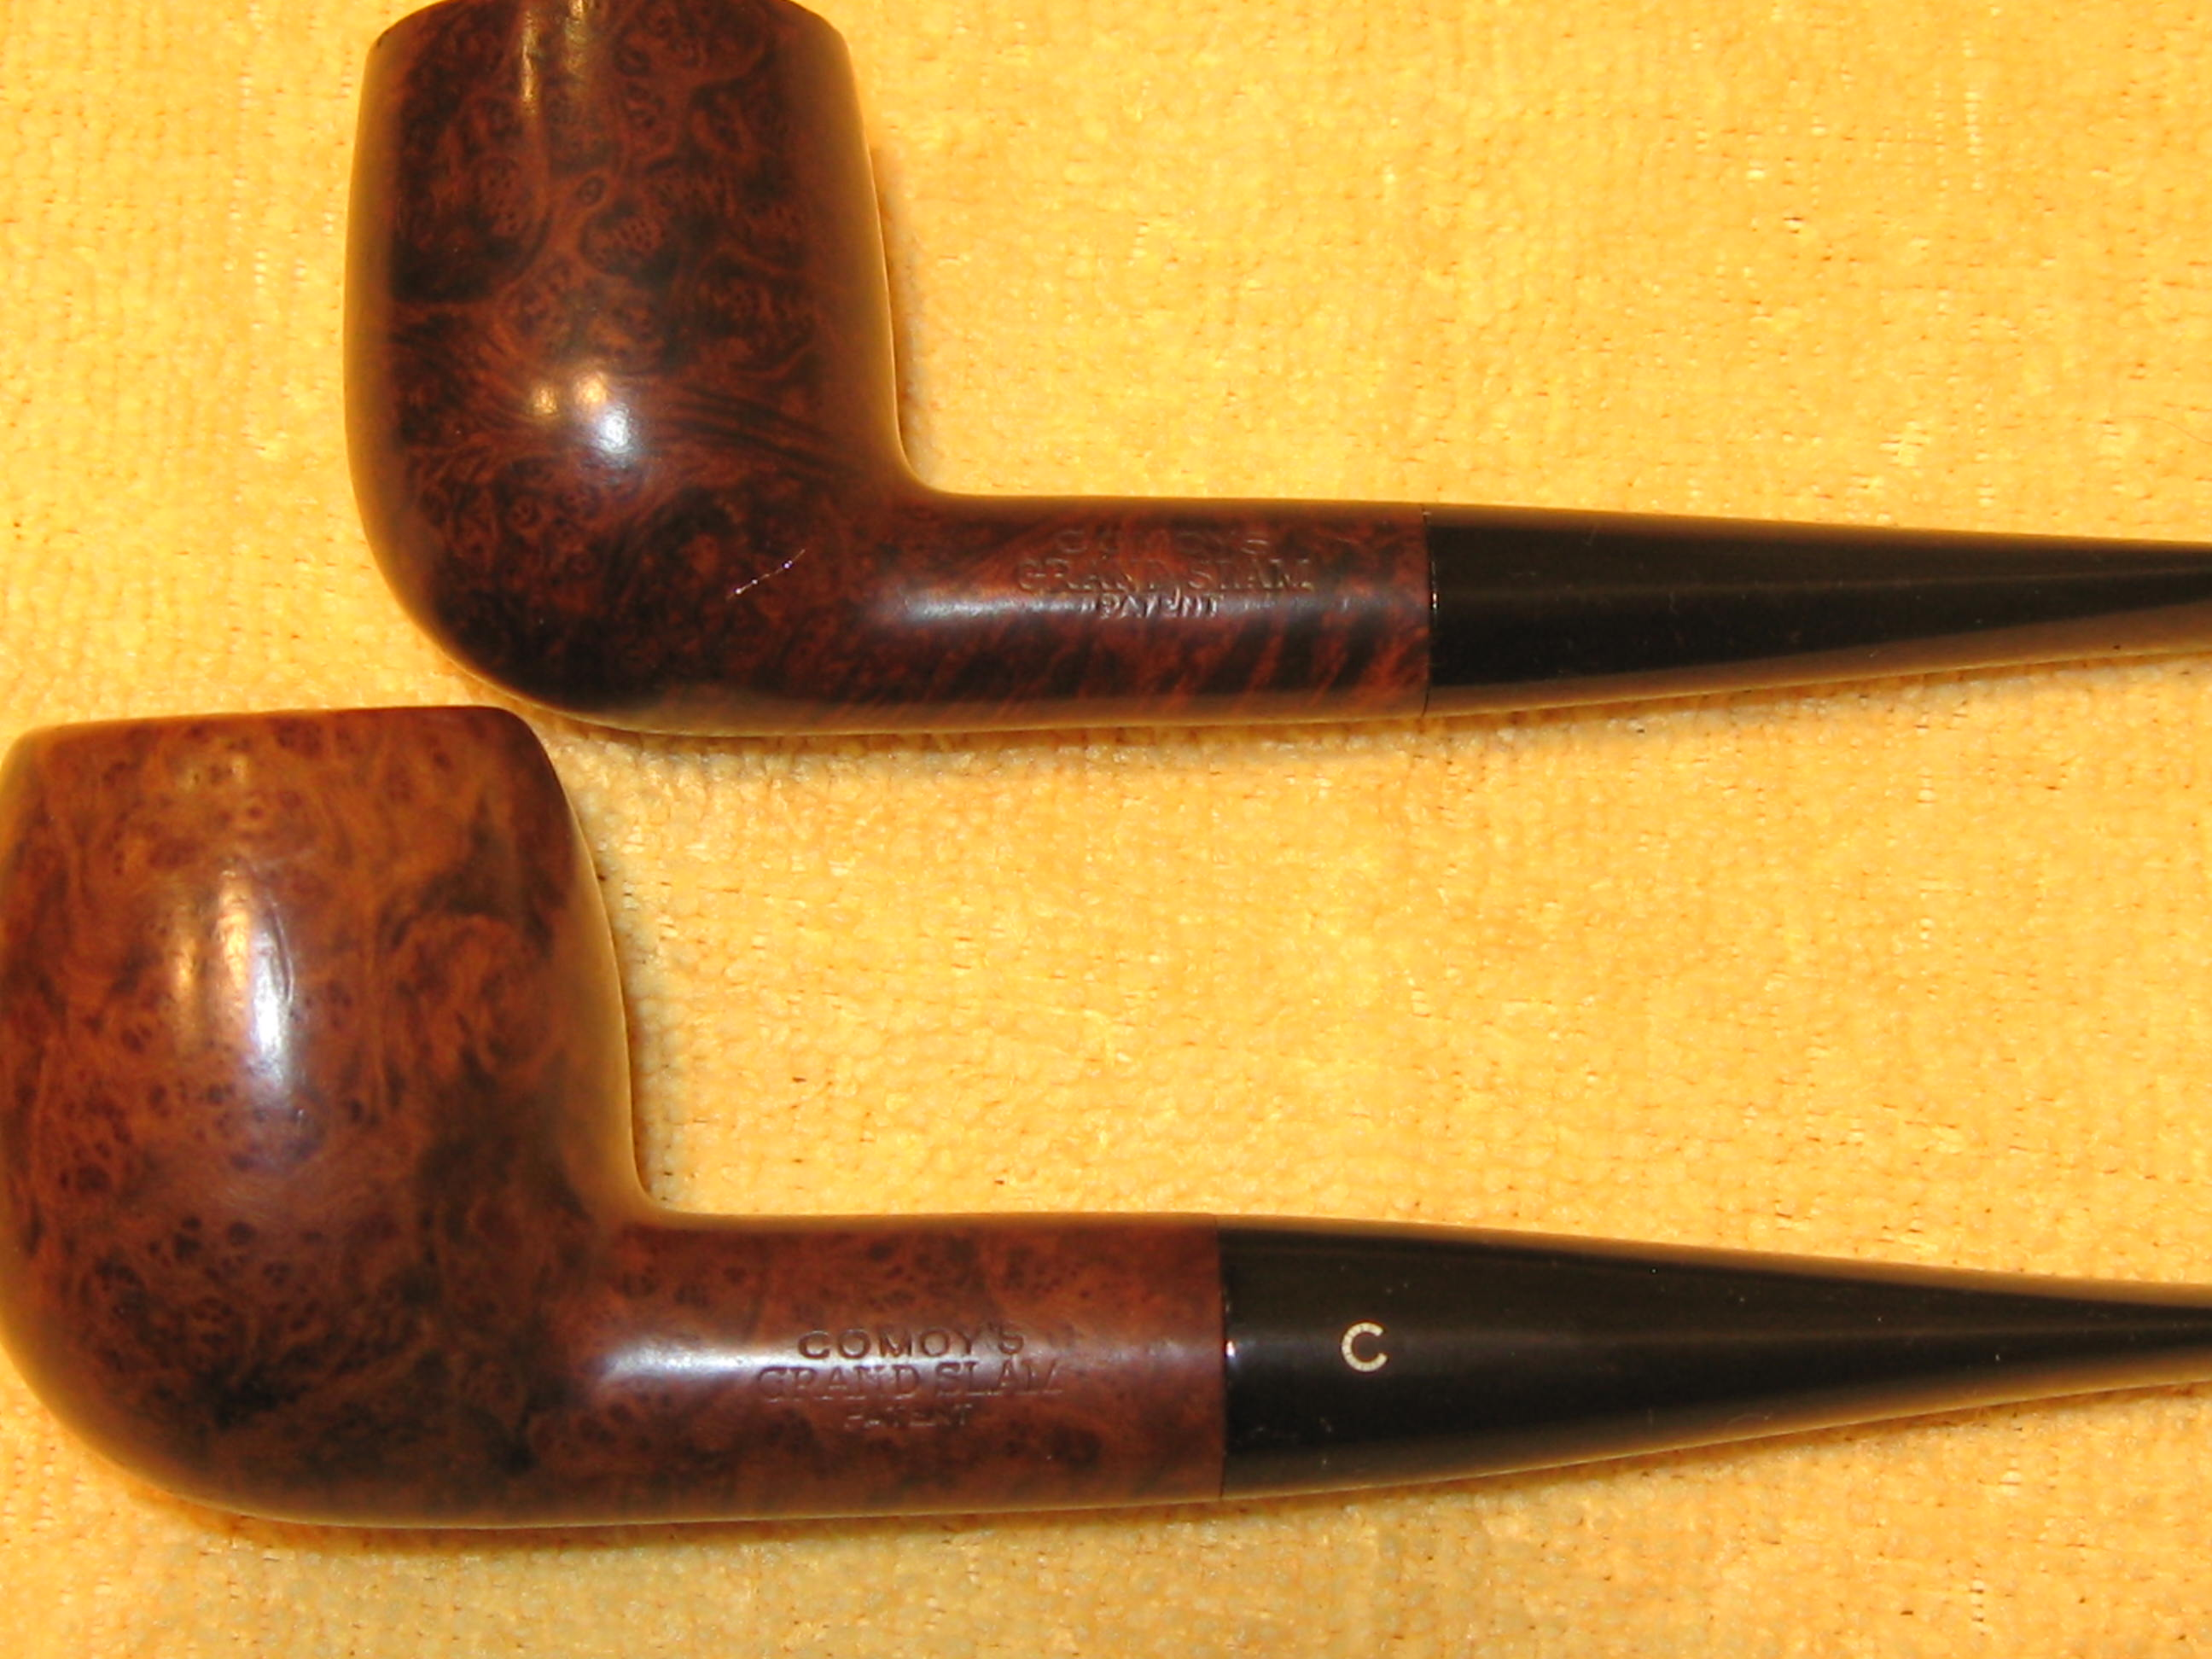 Comoy s Pipes